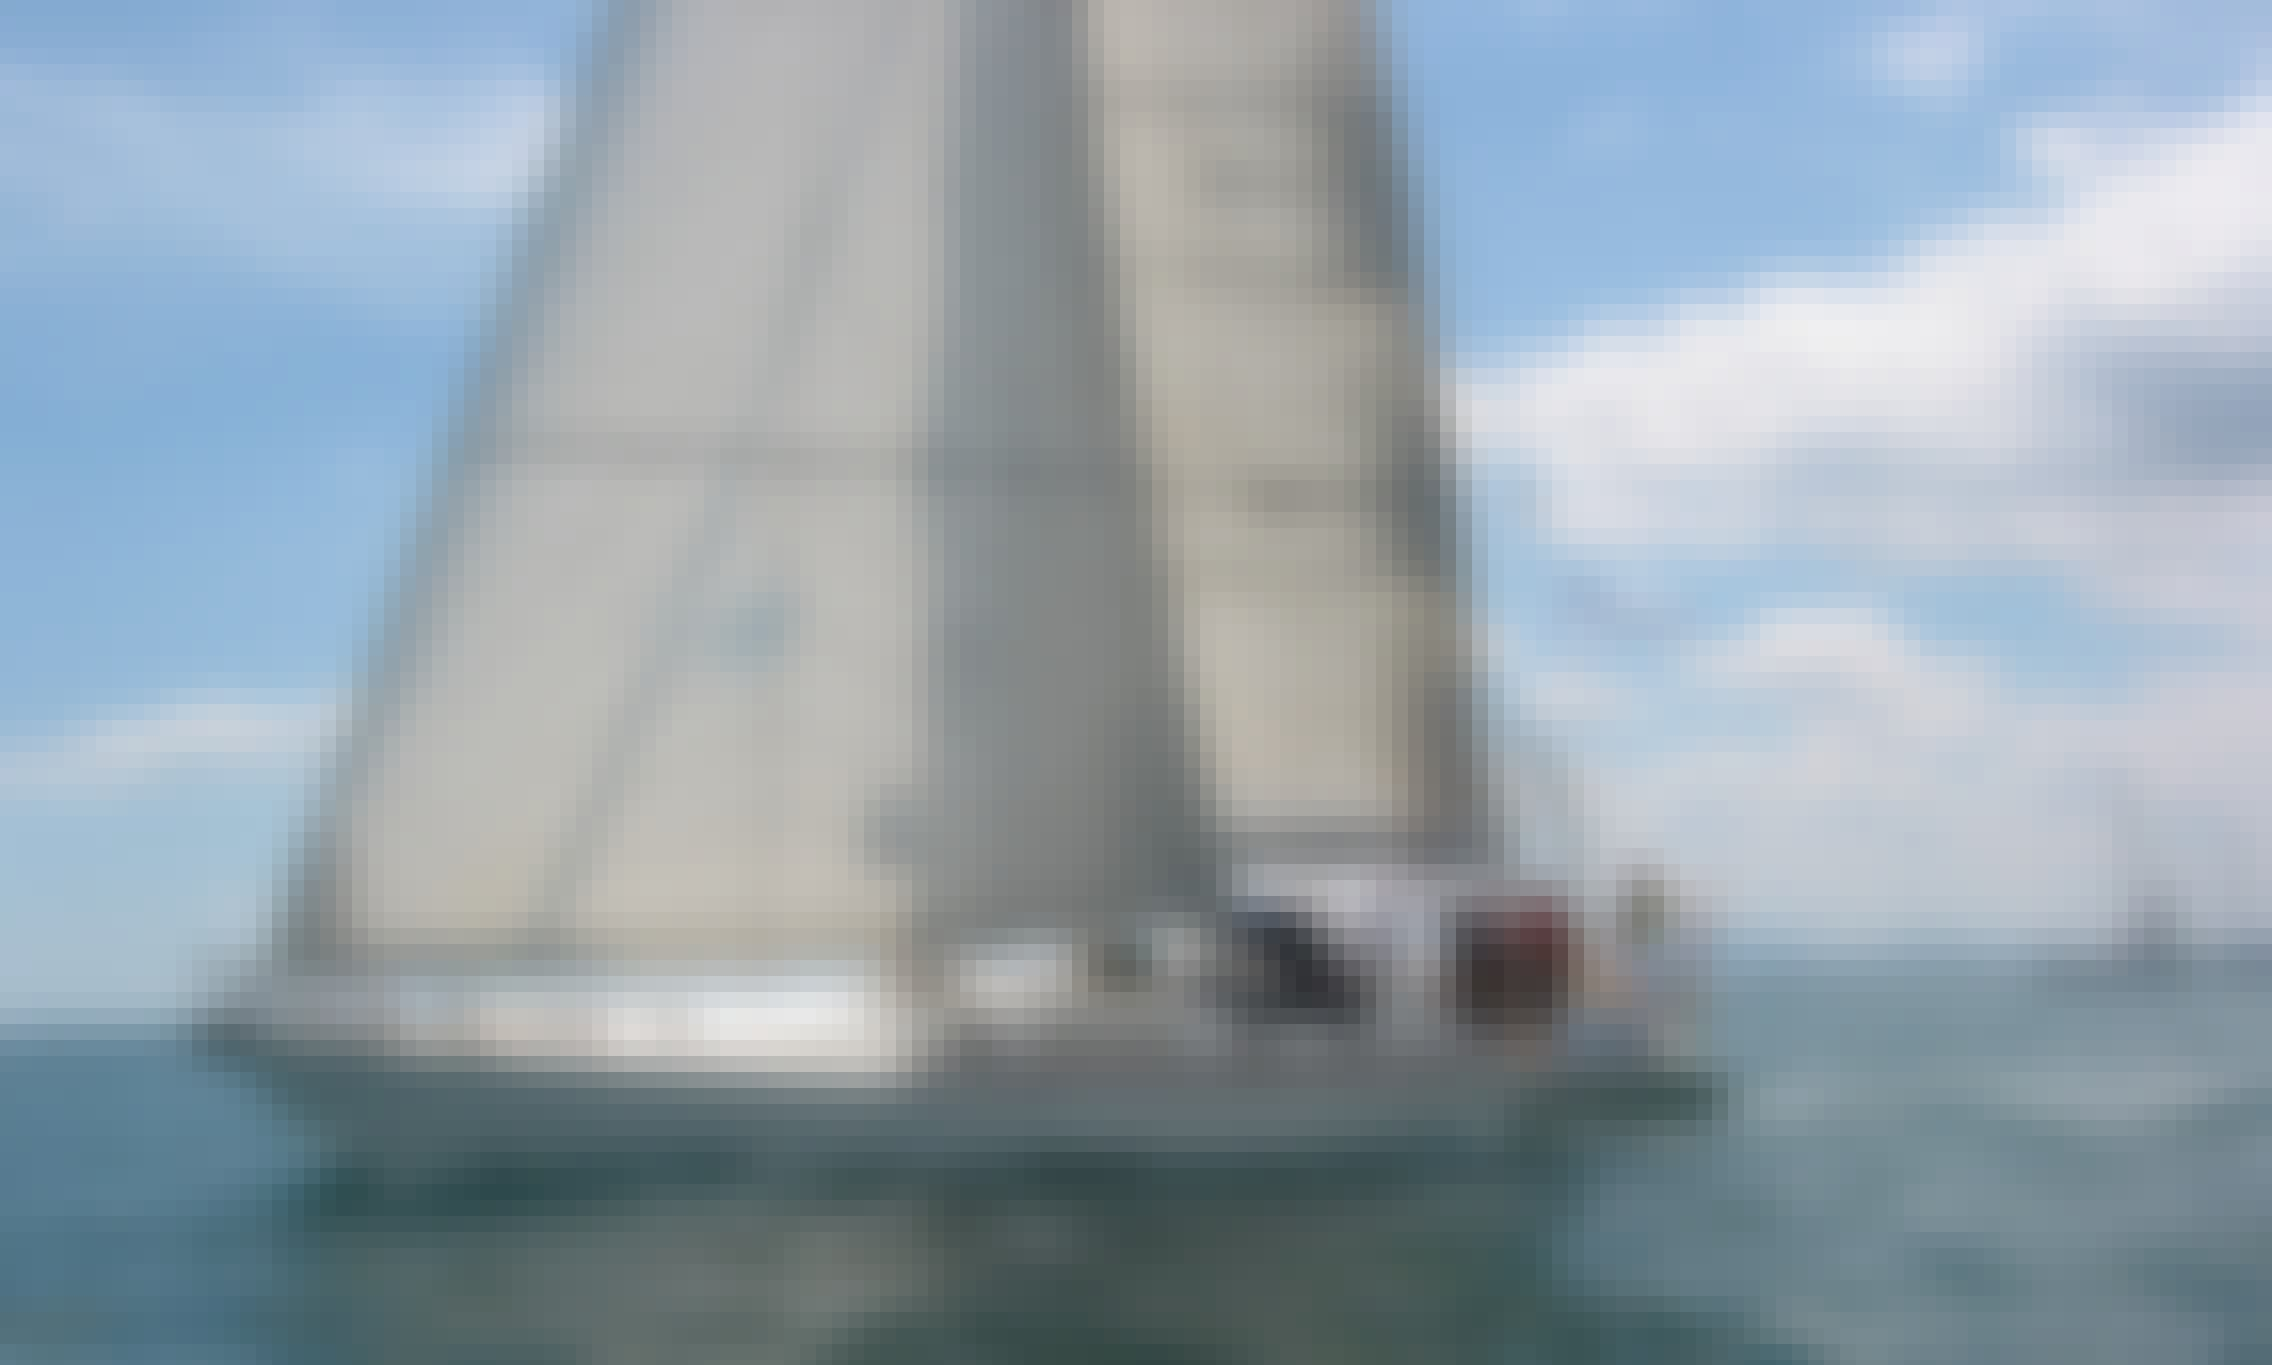 Beneteau First 51 Cruising Monohull Charter for 10 People in Cannigione, Italy